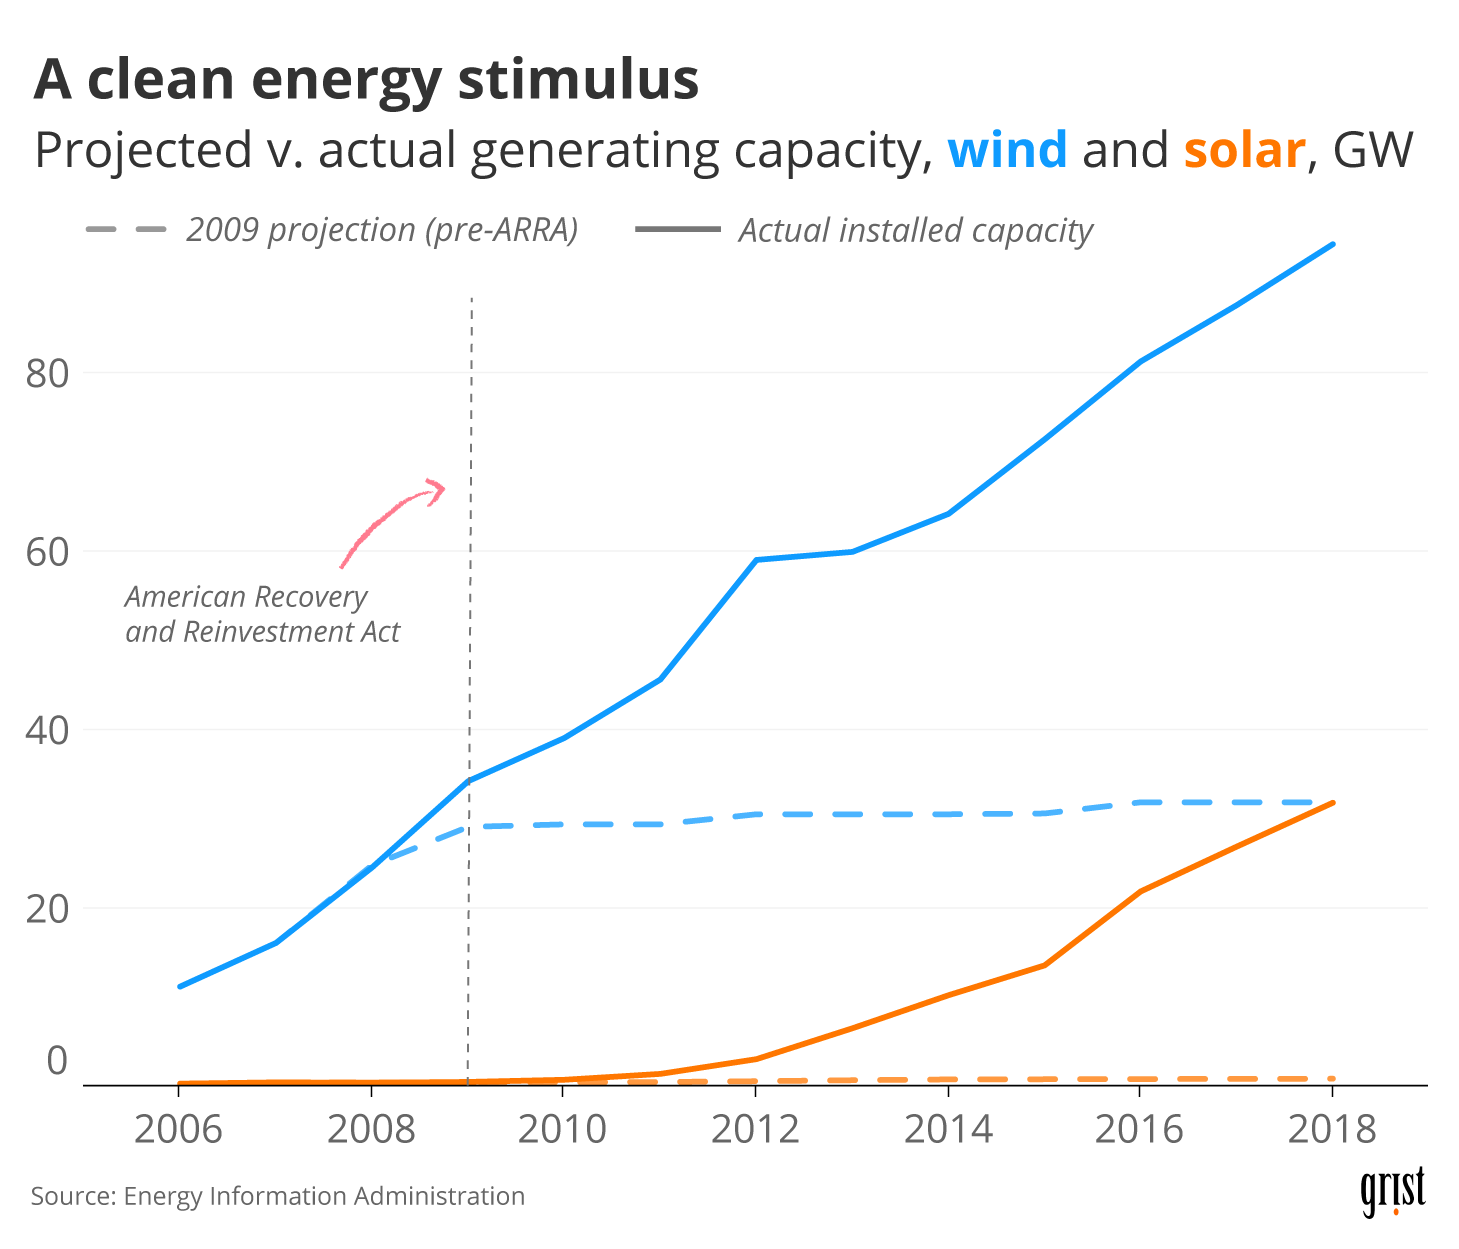 A chart showing the projected vs. actual generating capacity of wind and solar